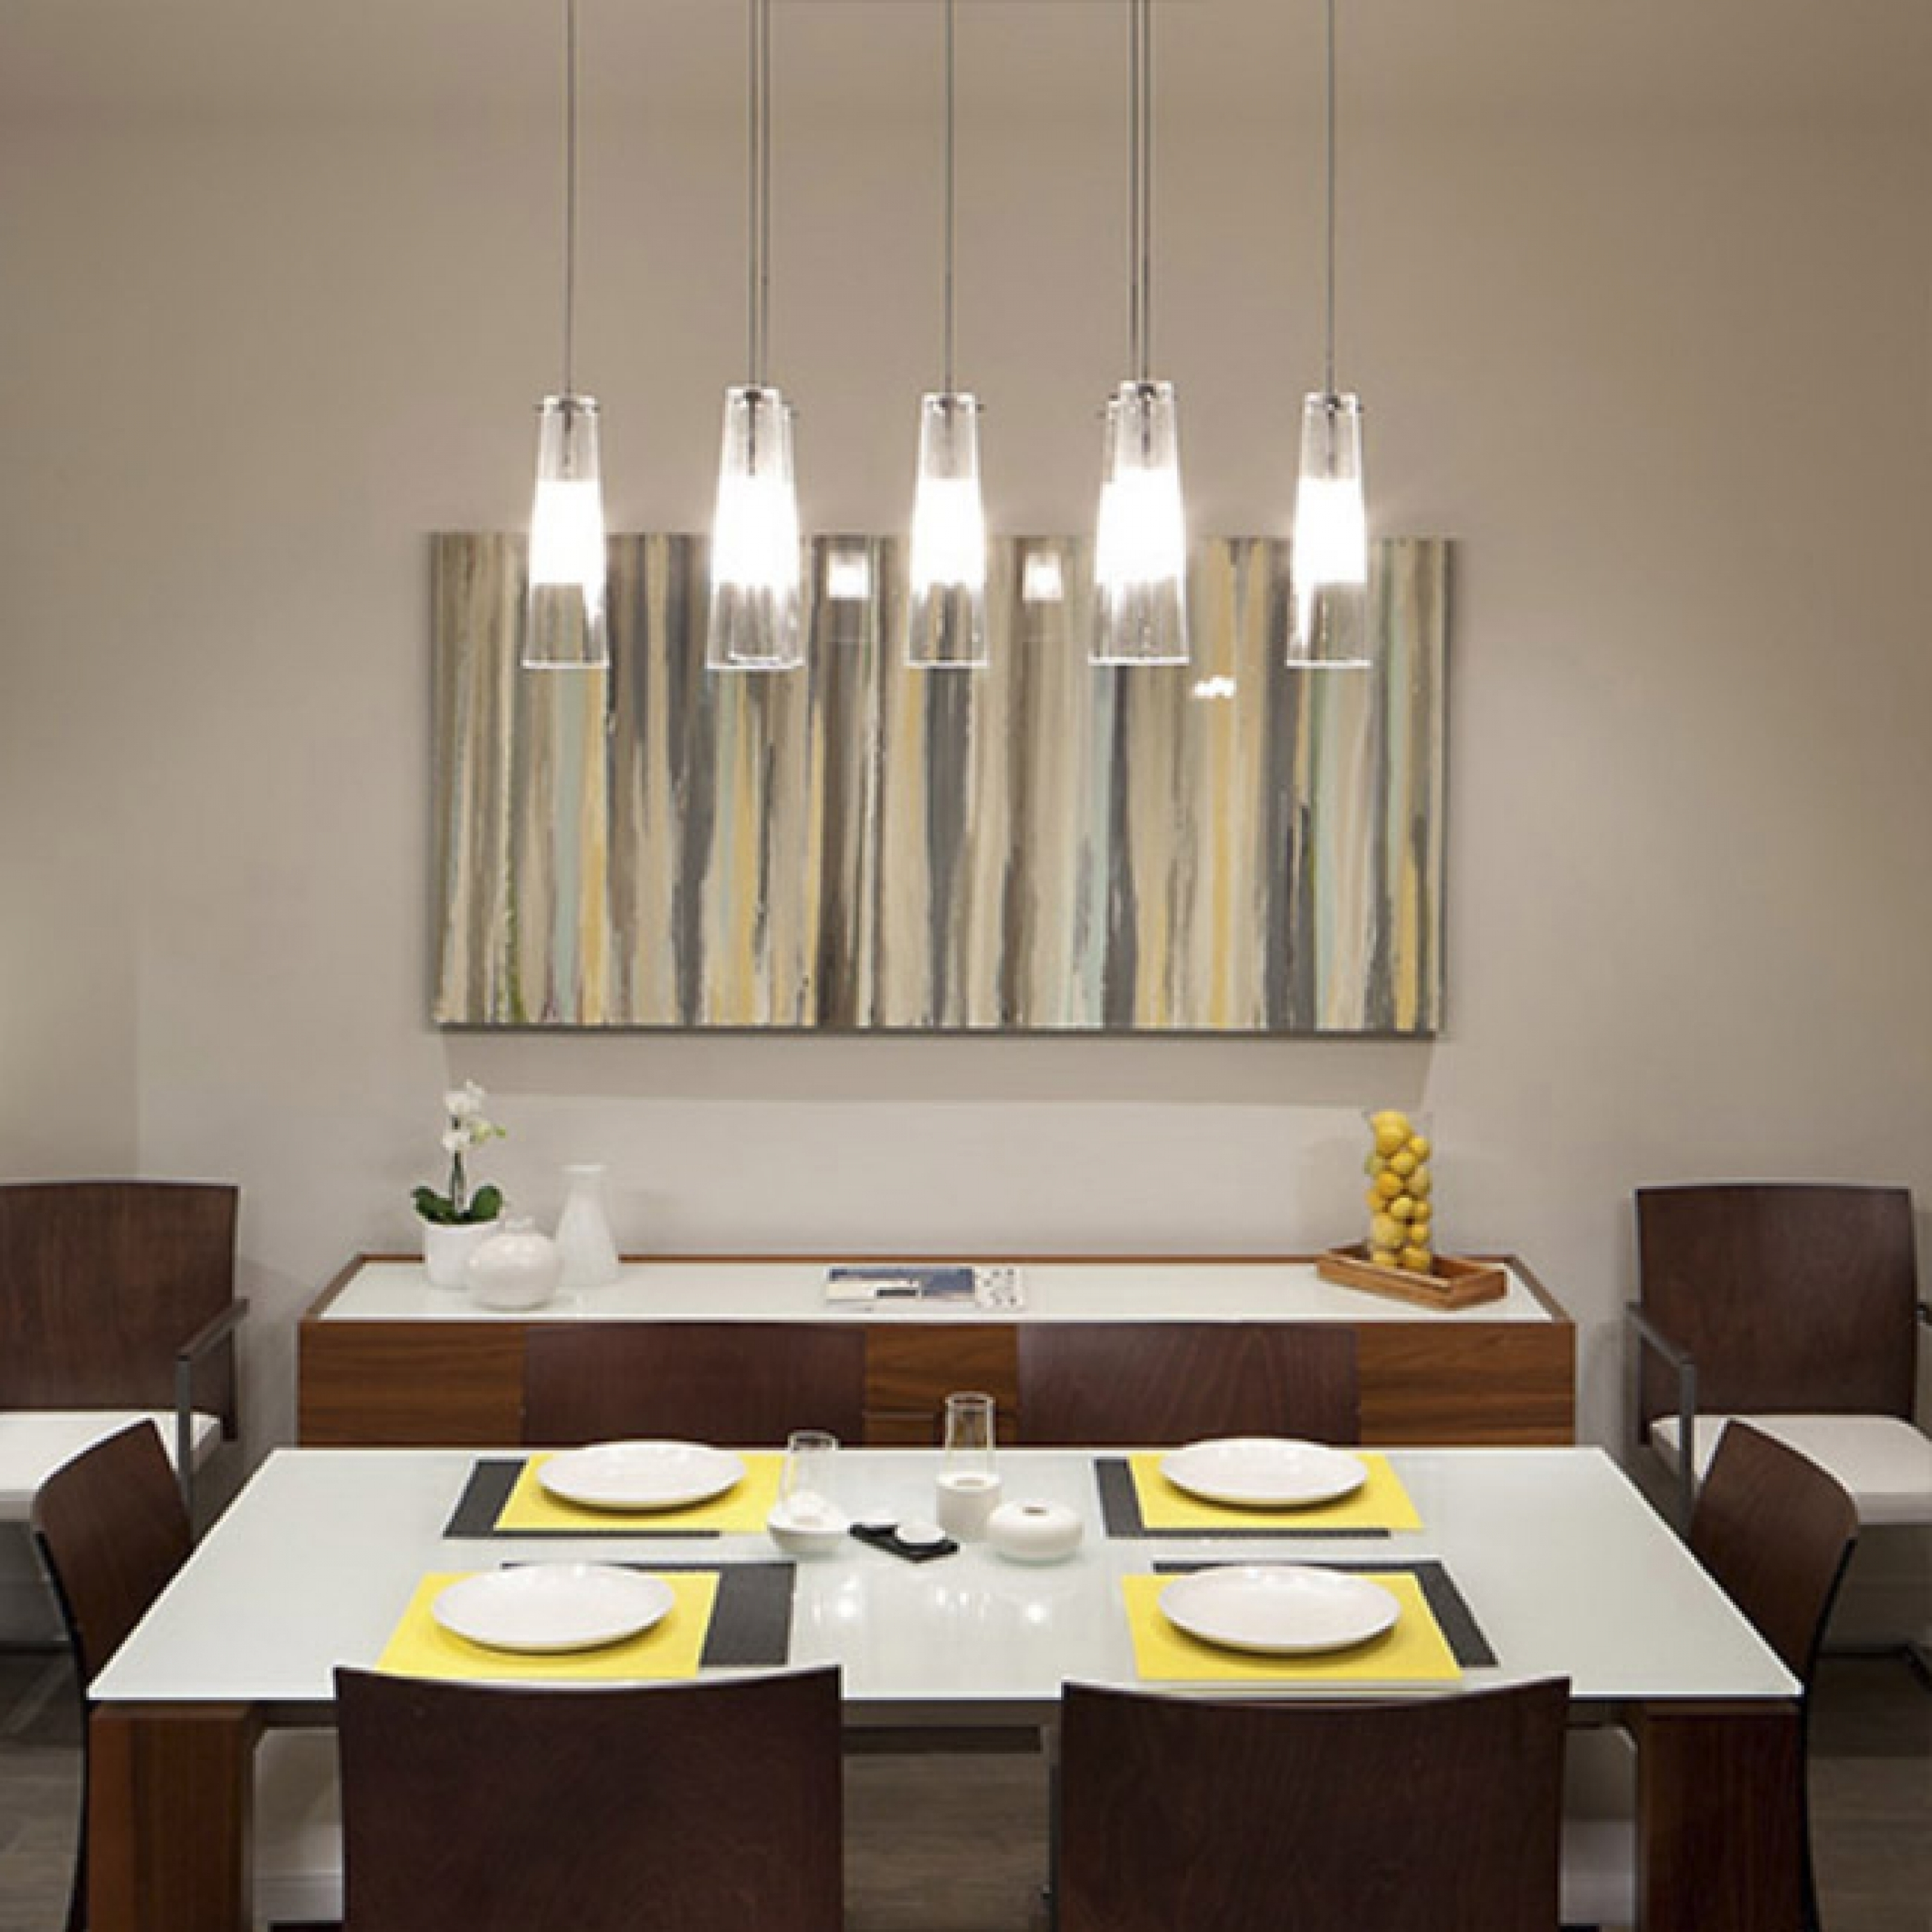 Most Up To Date Image 9104 From Post: Kitchen Table Lighting – With Above Also Pertaining To Over Dining Tables Lighting (View 11 of 25)